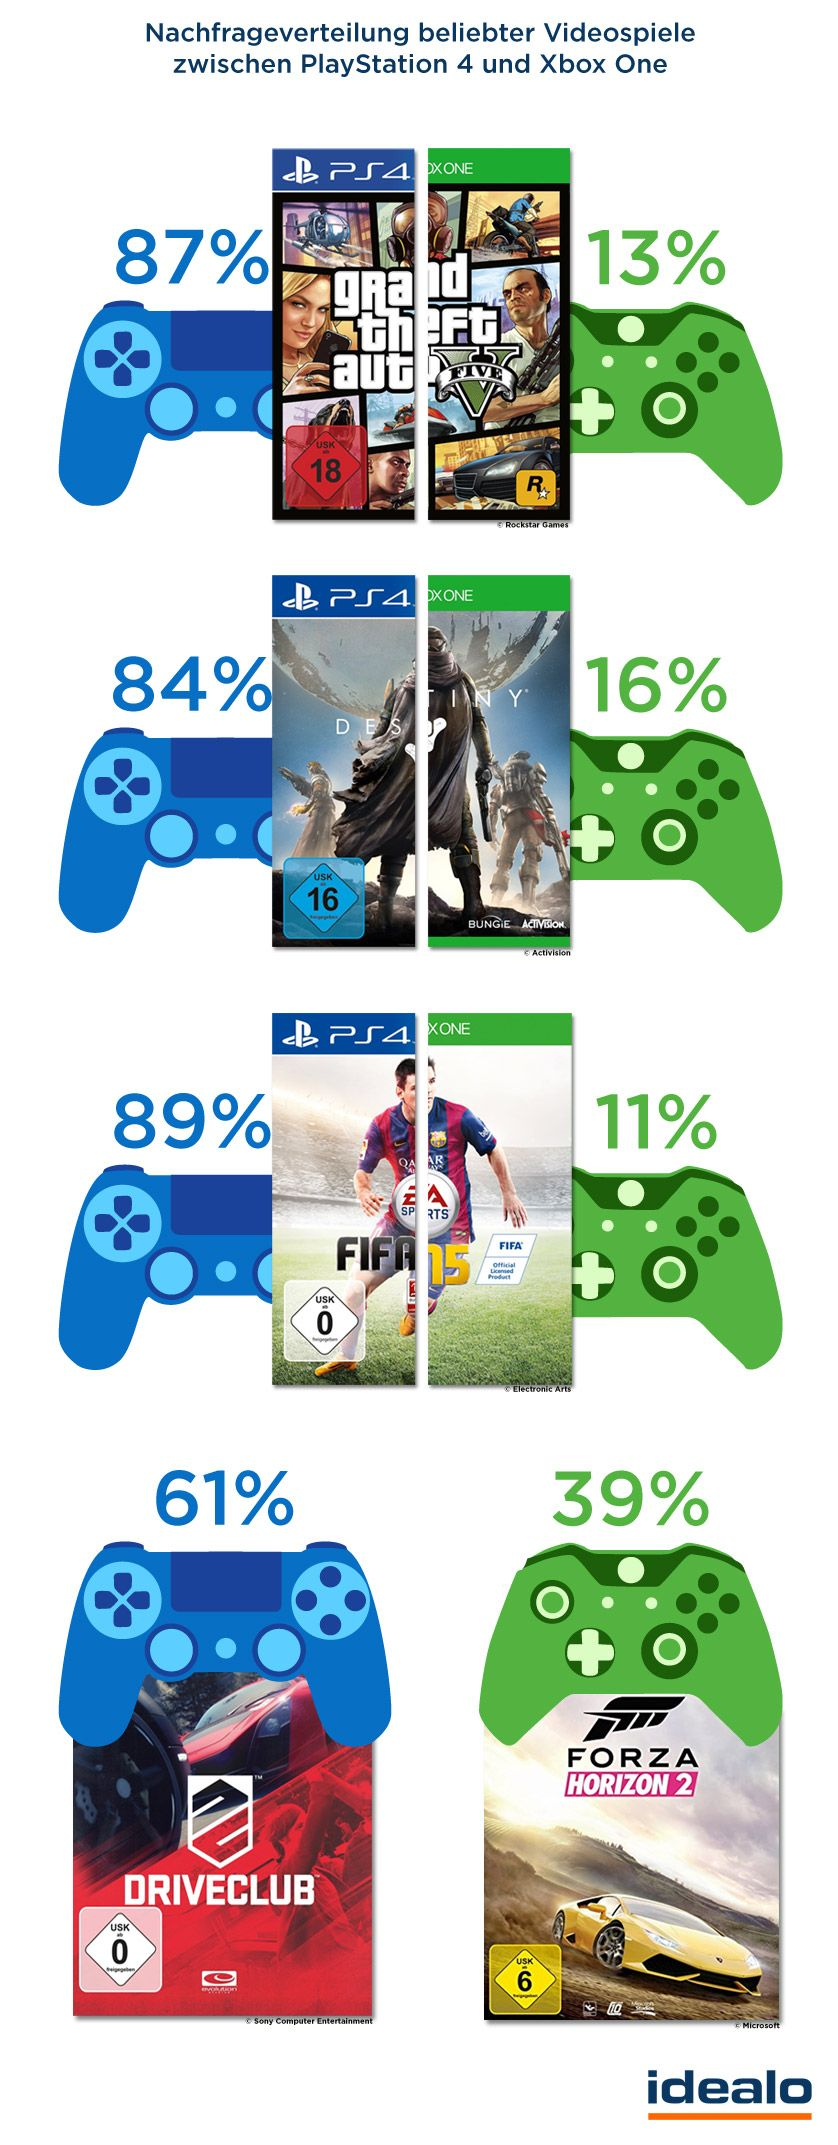 Playstation 4 Vs Xbox One Games Video Games Funny Playstation Xbox